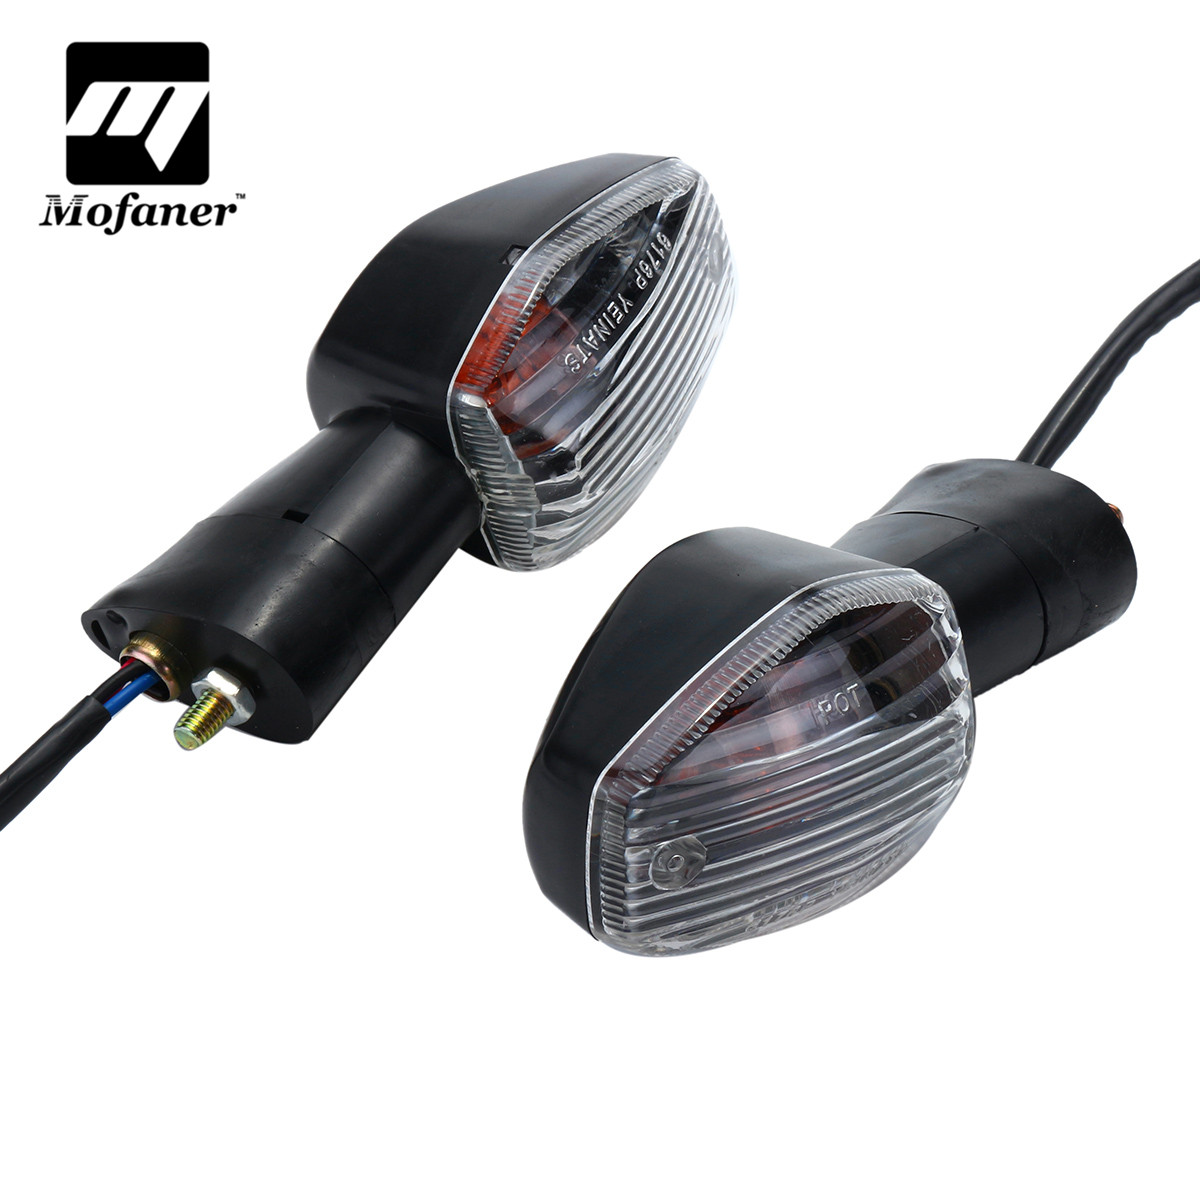 Mofaner One Pair Motorcycle Turn Signal Light Indicator For Honda CB400 CB1300 CBR 600 1000 RR F4Mofaner One Pair Motorcycle Turn Signal Light Indicator For Honda CB400 CB1300 CBR 600 1000 RR F4